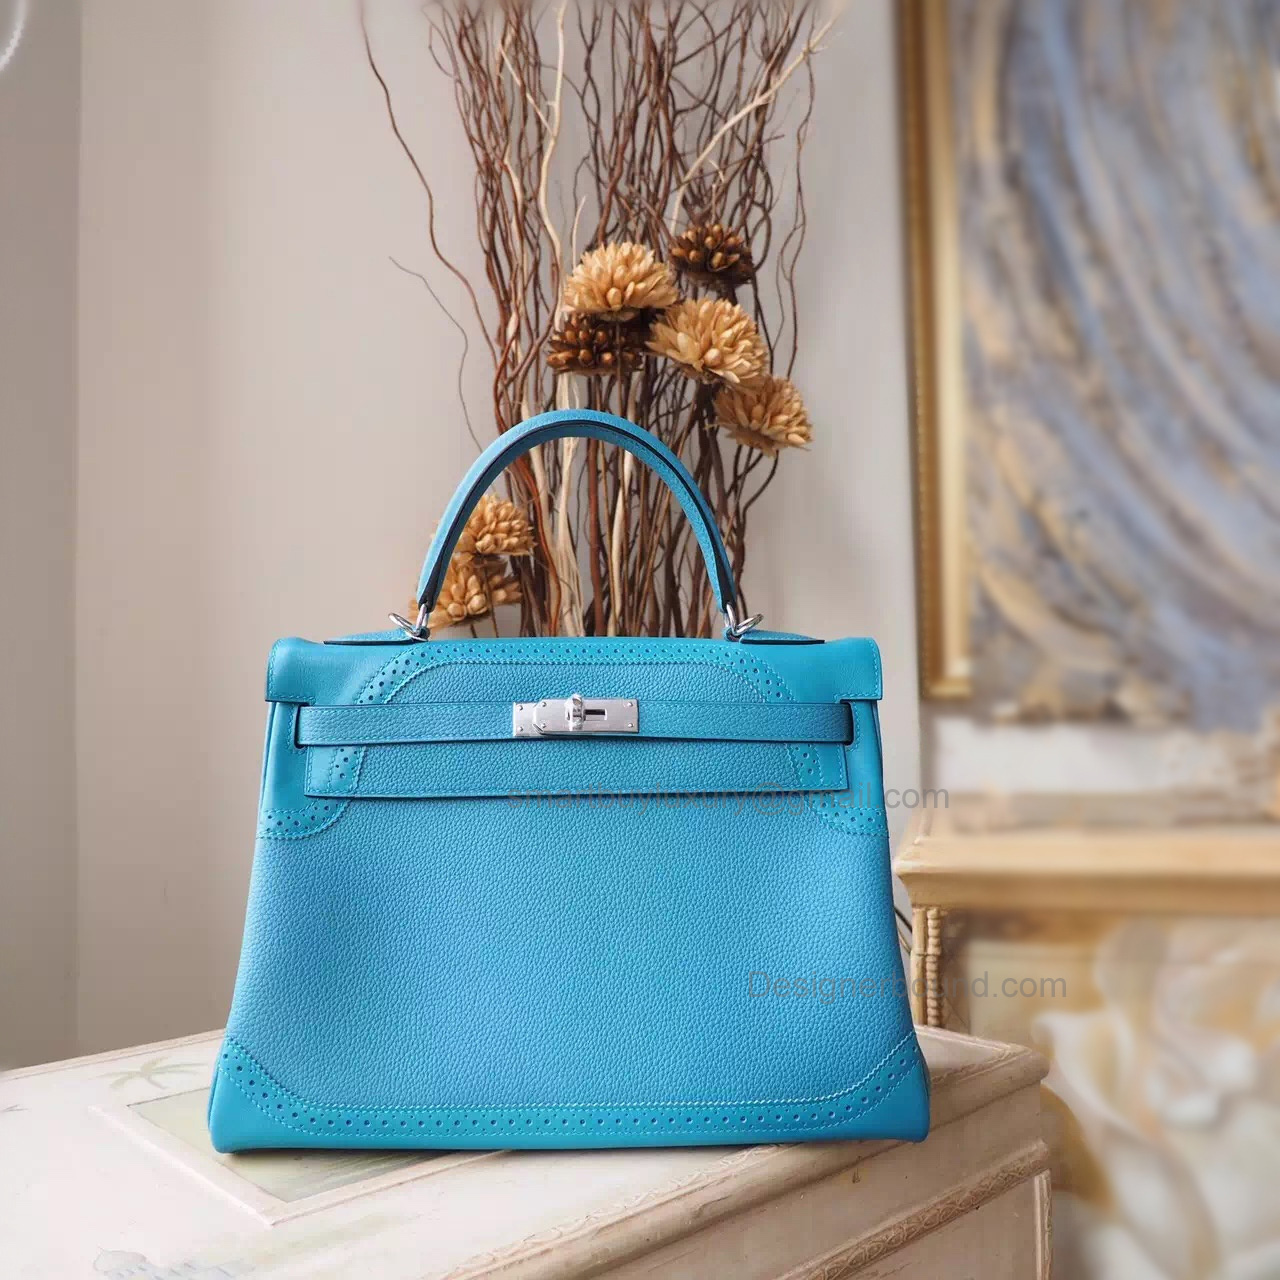 Handmade Hermes Kelly 32 Ghillies Copy Bag in 7b Turquoise Blue Calfskin PHW